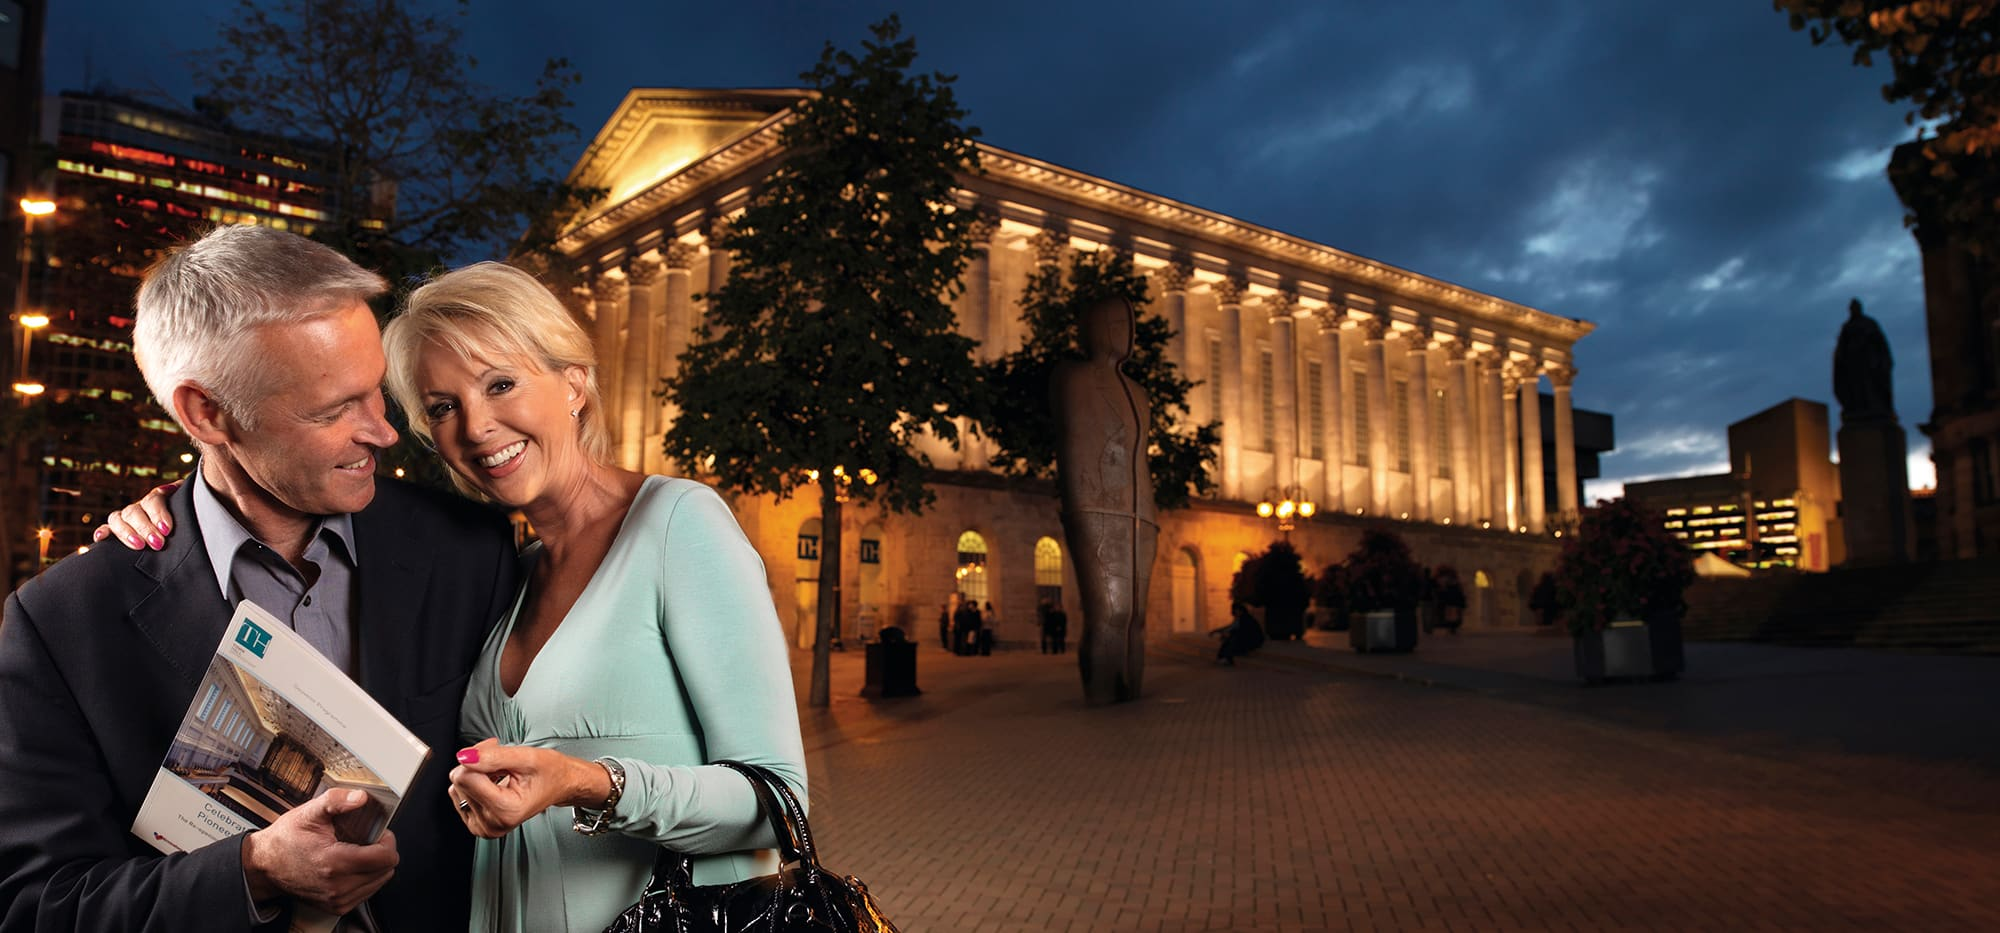 Couple on Night out at Birmingham Town Hall by Ross Vincent